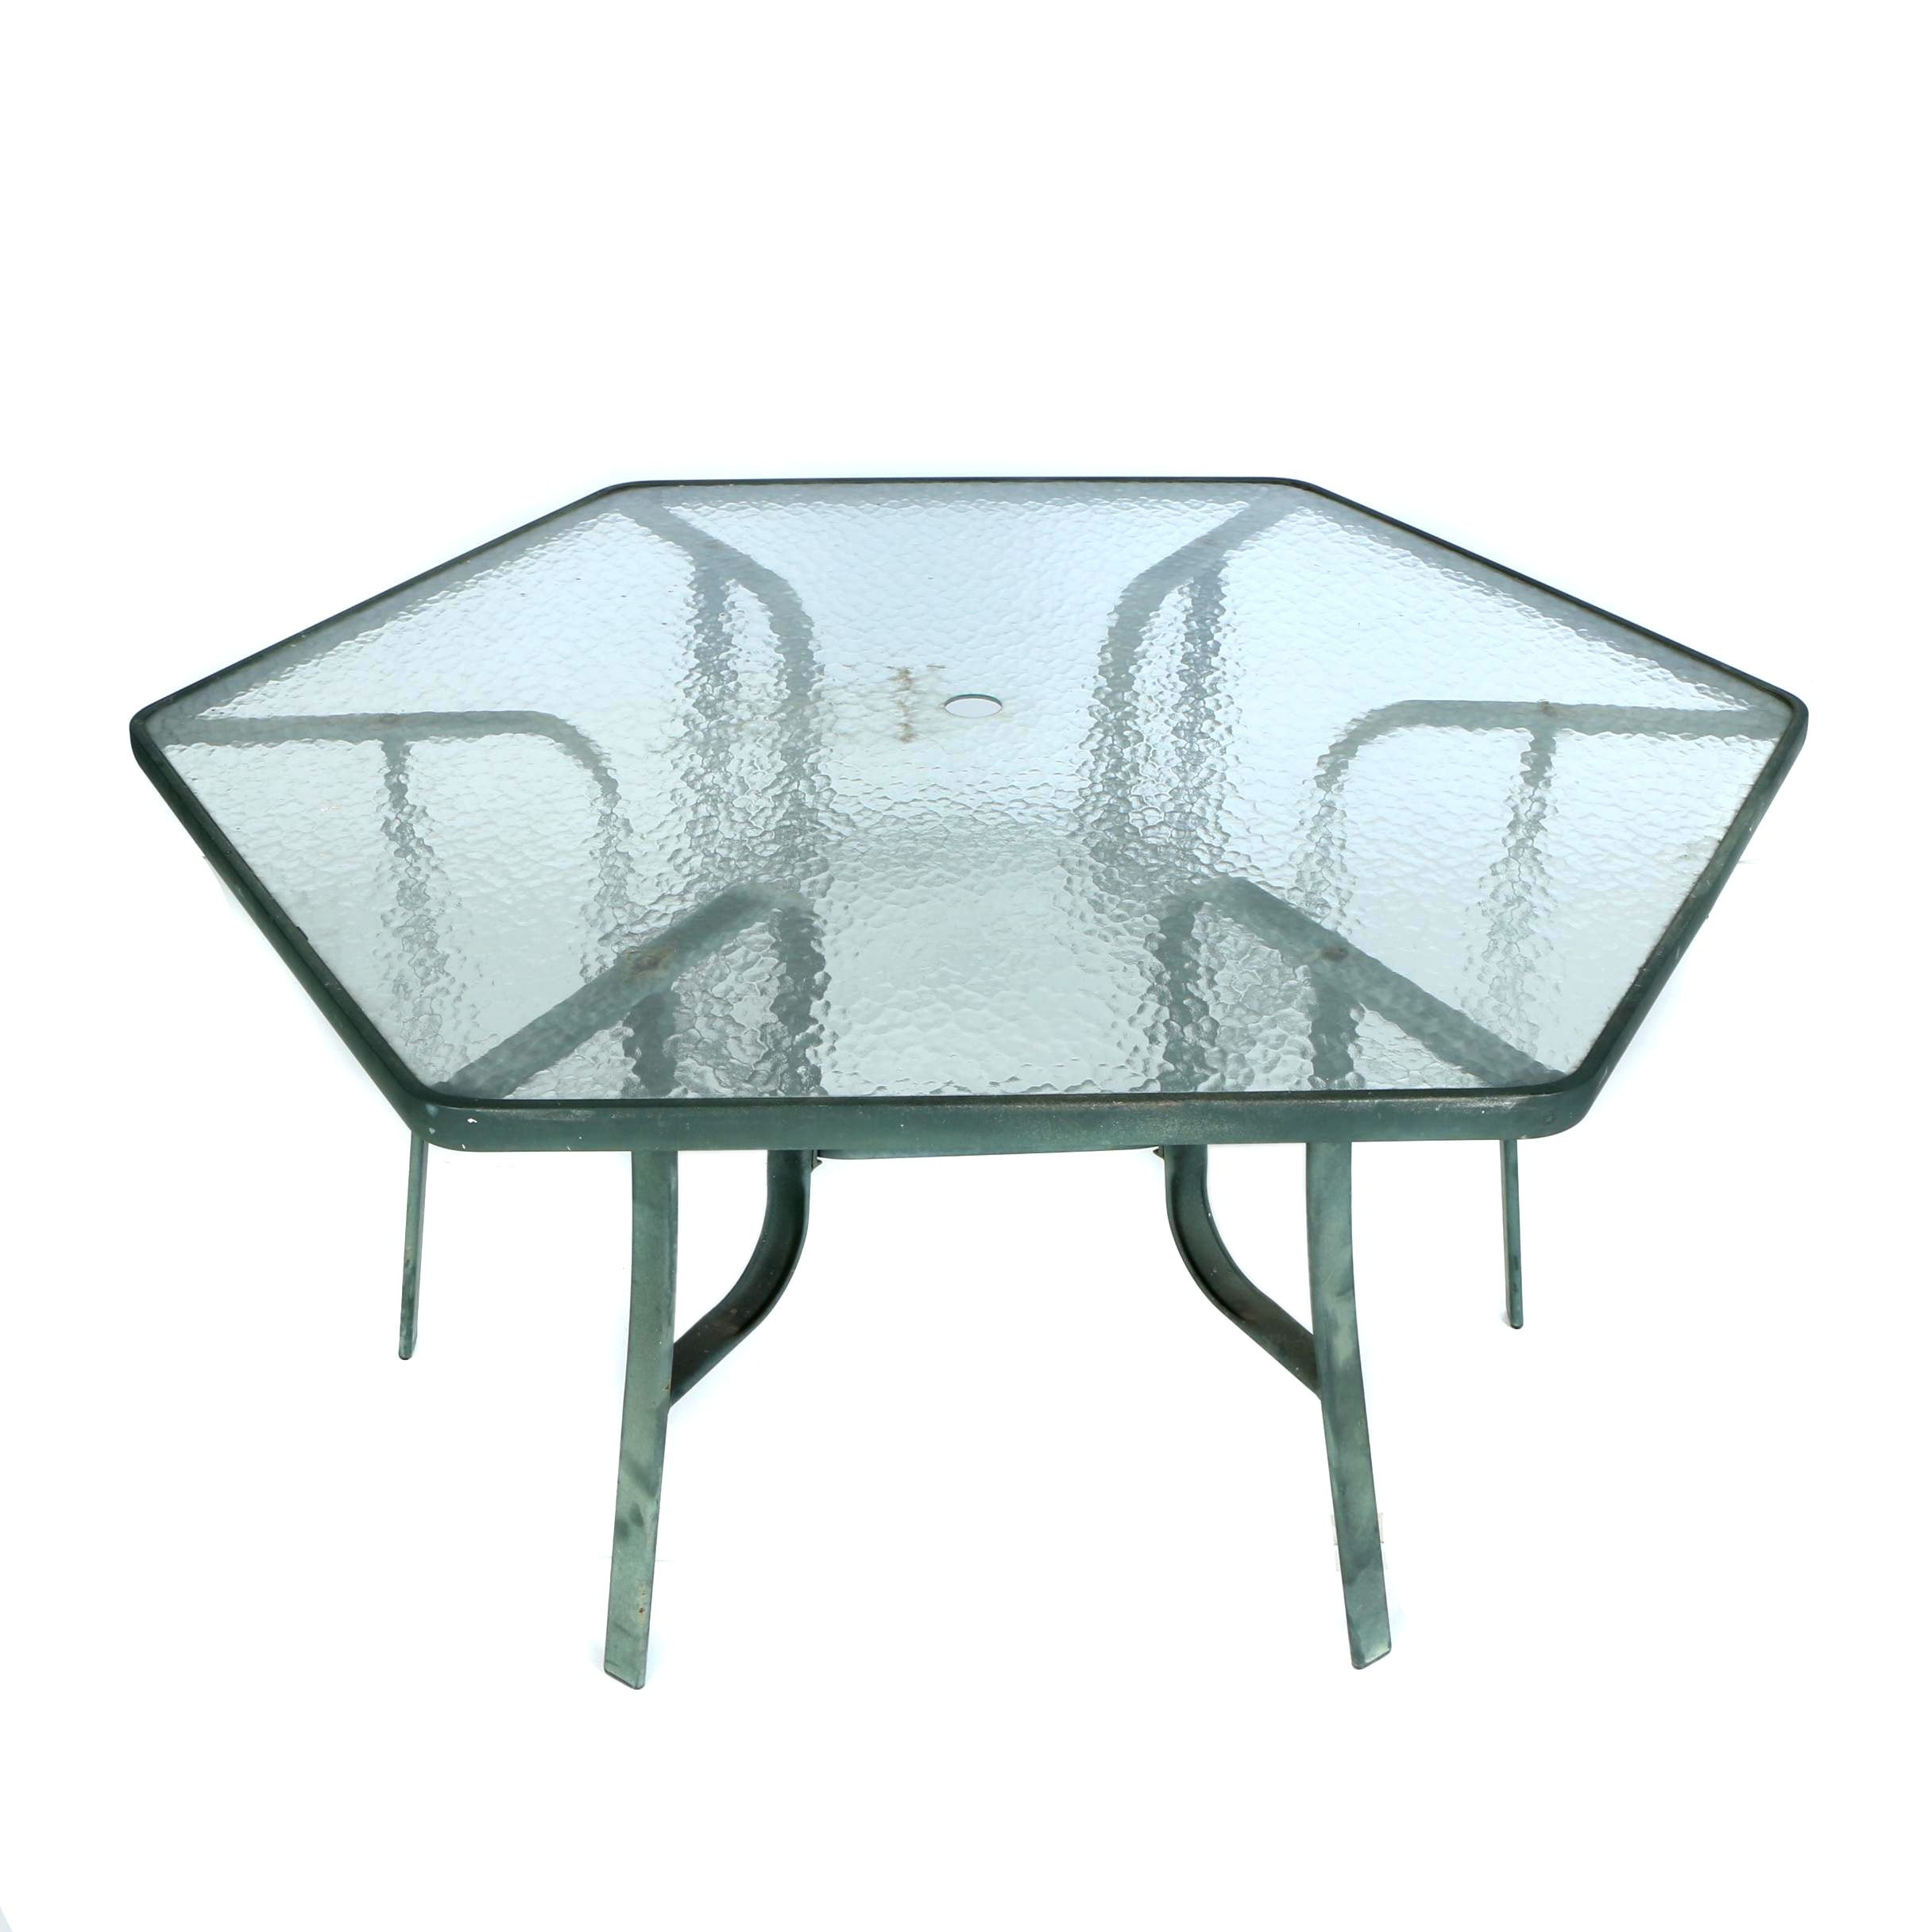 Glass Top Patio Table with Umbrella Stand